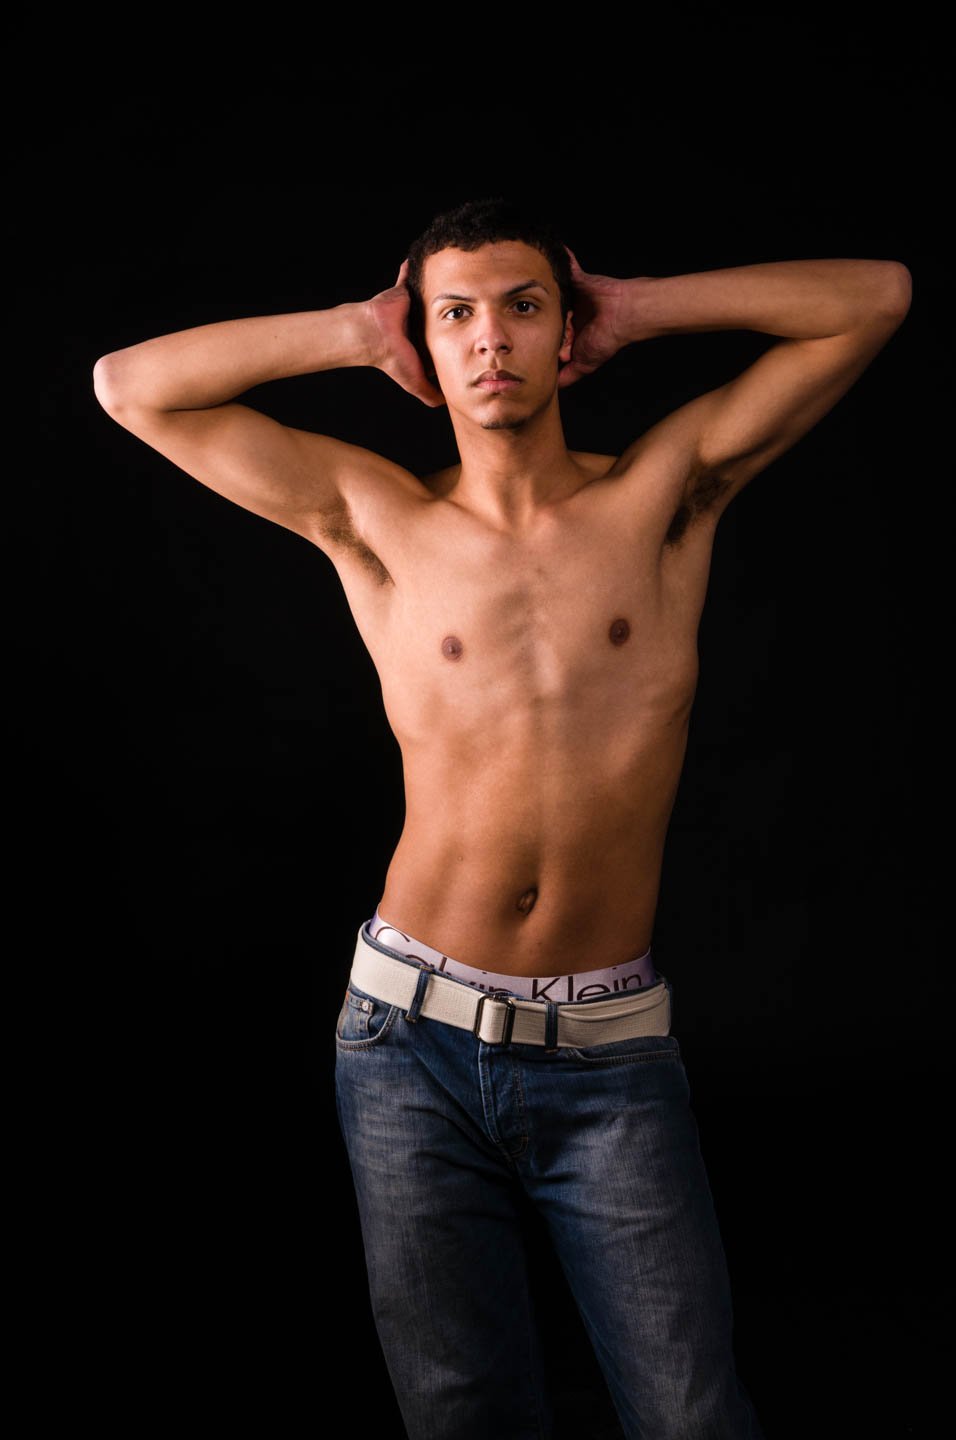 Bradley's fitness photo as he is shirtless on a black background in studio